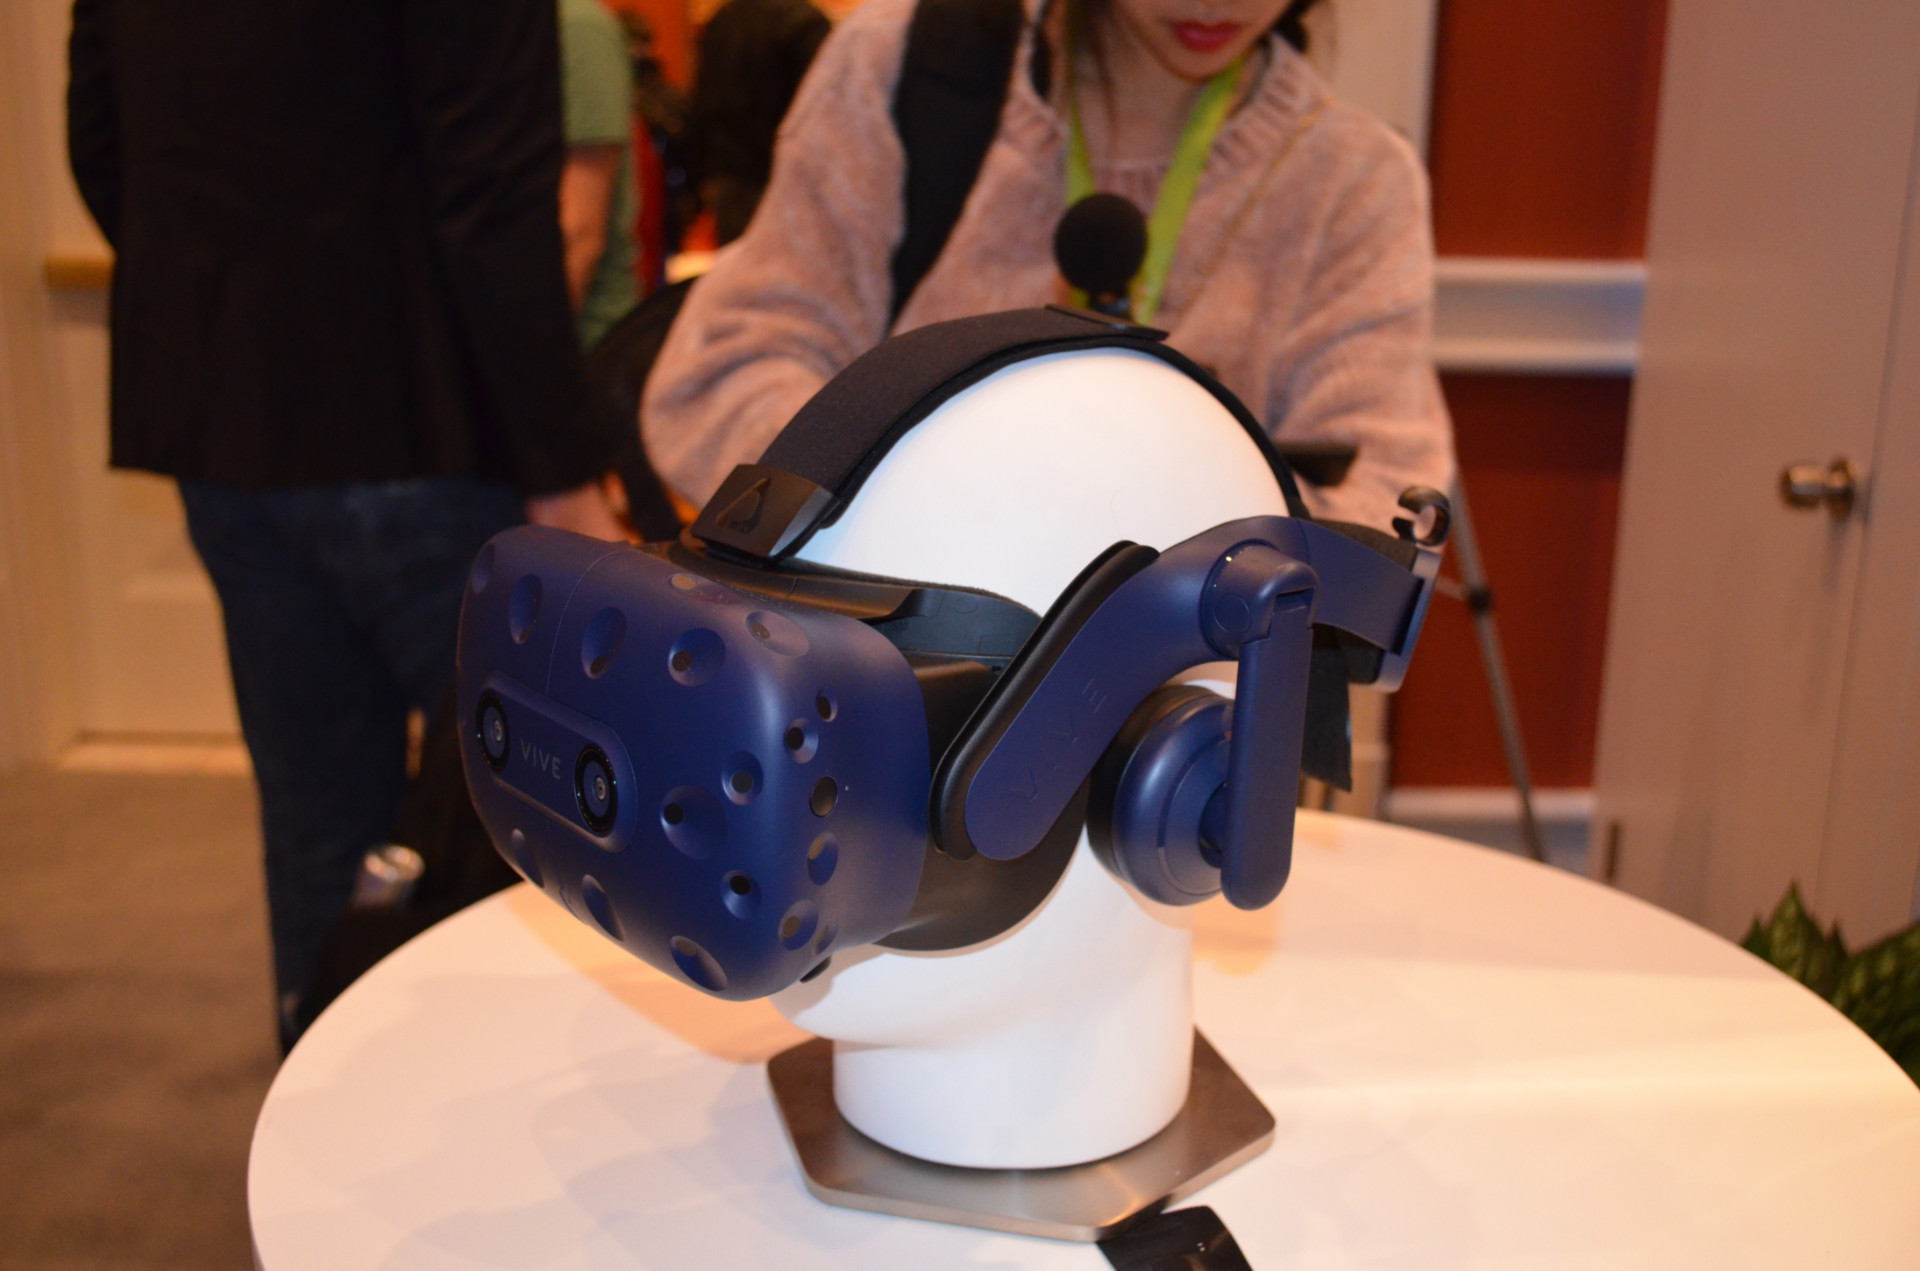 CES 2018: First Look: HTC Vive Pro - The New Vive on the Block